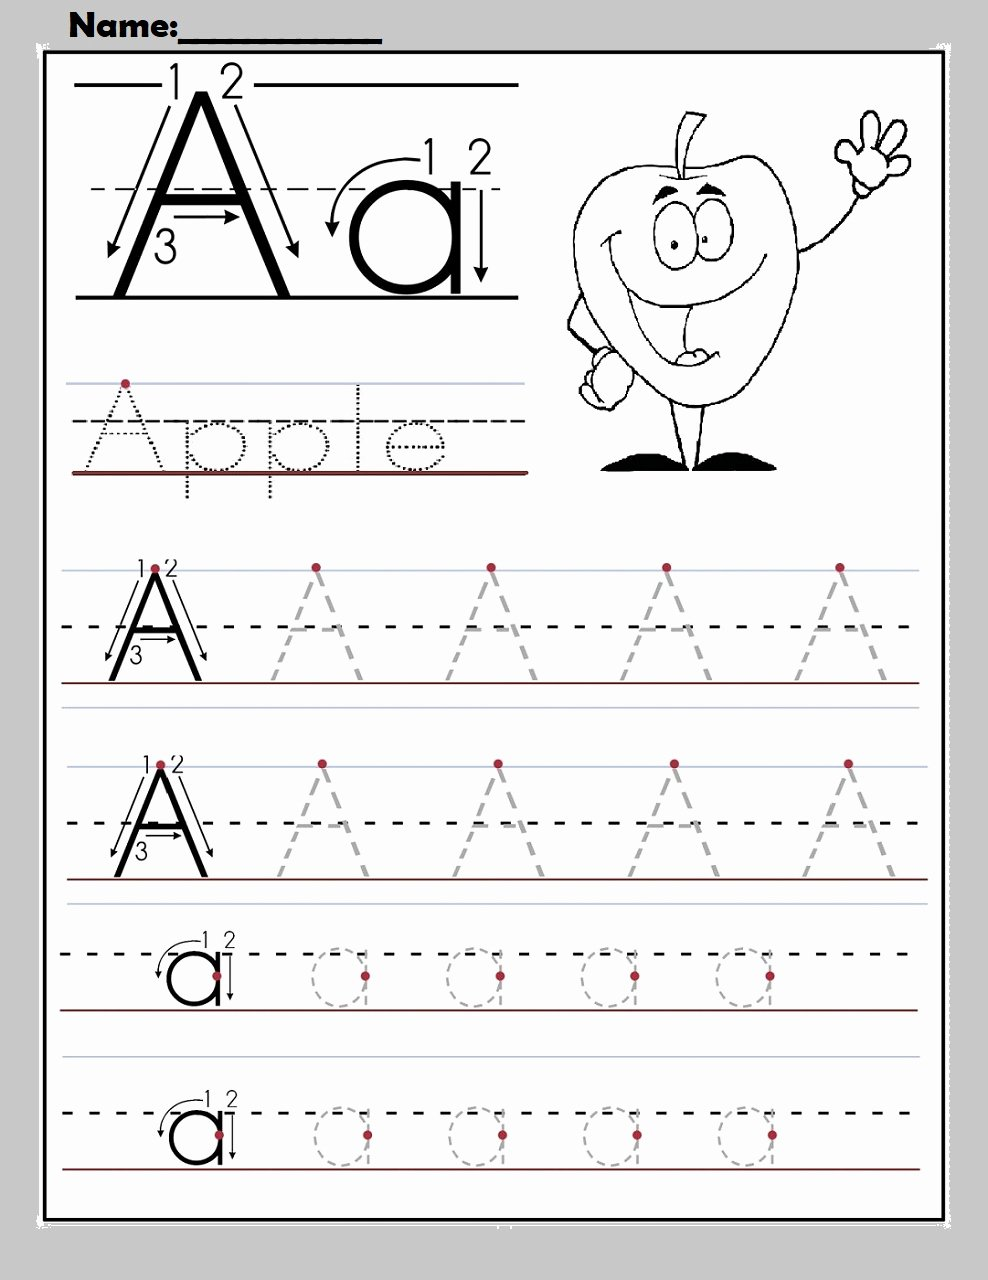 Letter Worksheets for Preschoolers Free New Worksheet Free Alphabet Worksheets to Print for Apple